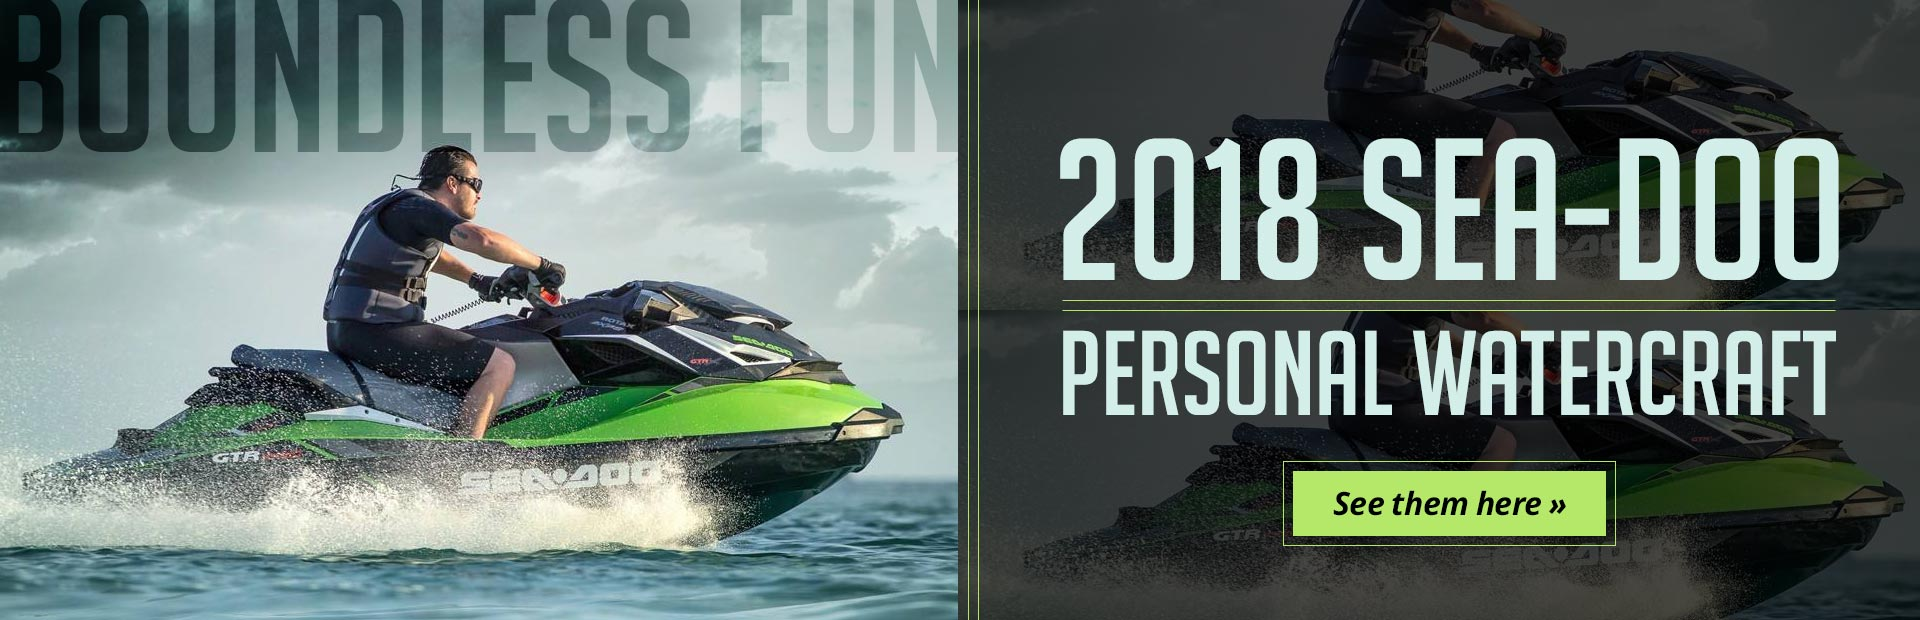 2018 Sea-Doo Personal Watercraft: Click here to view the models.